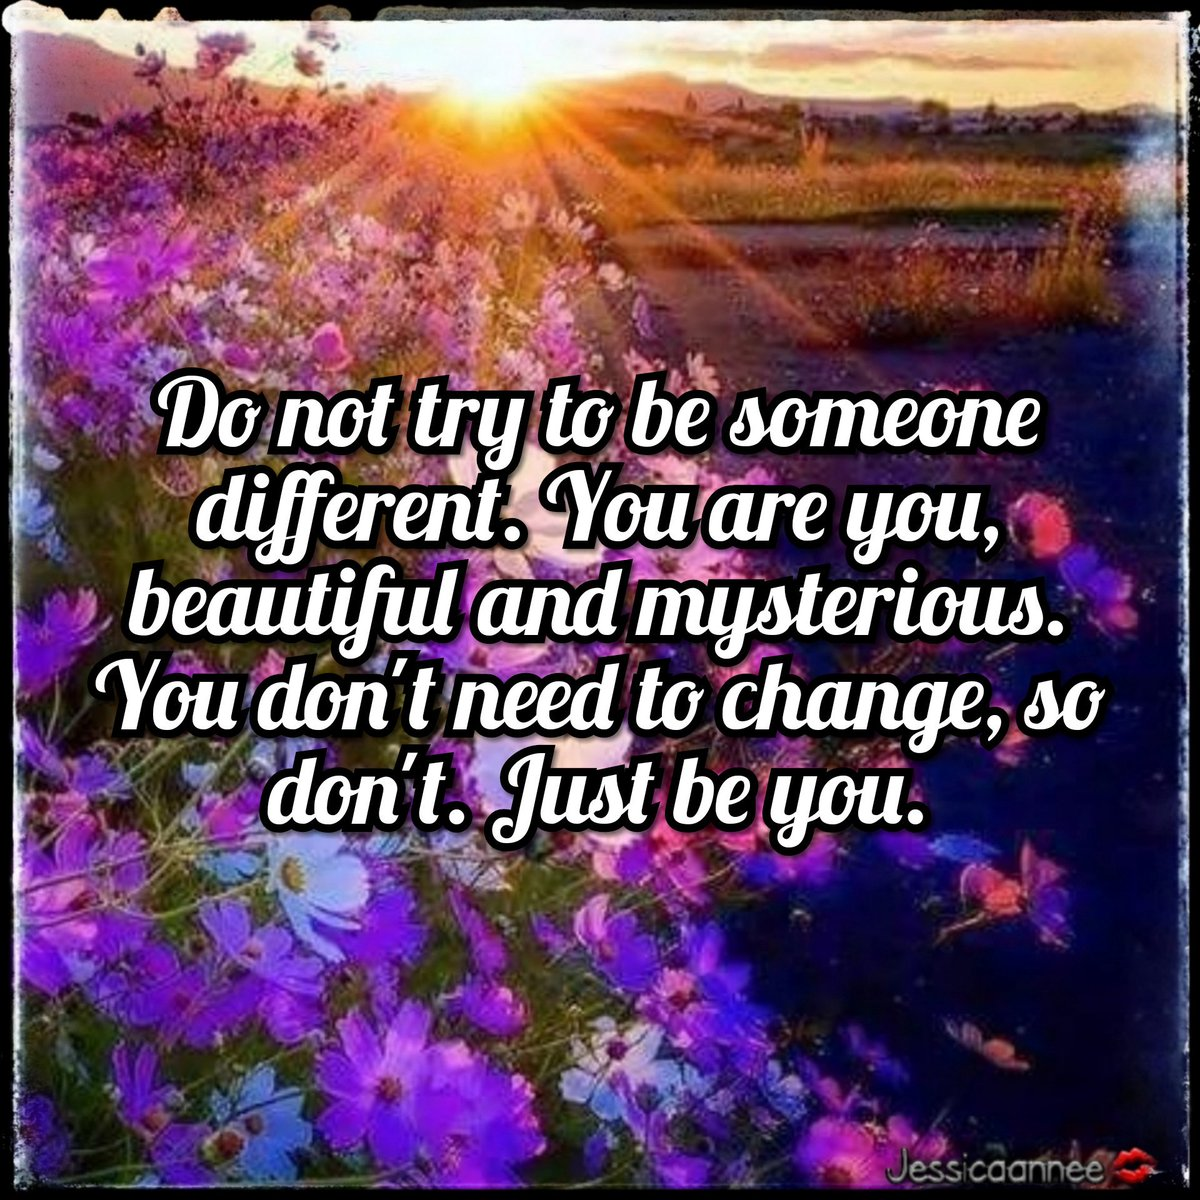 Changing the world one post at a time  °You are you, beautiful and mysterious. You don&#39;t need to change.°    #MakeChesterProud #StayStrong #MentalHealthAwareness #SuicidePrevention #positivementalattitude #sicknotweak #KeepThePromise #MotivationalQuotes #EndTheStigma<br>http://pic.twitter.com/TGwoYVZMXq